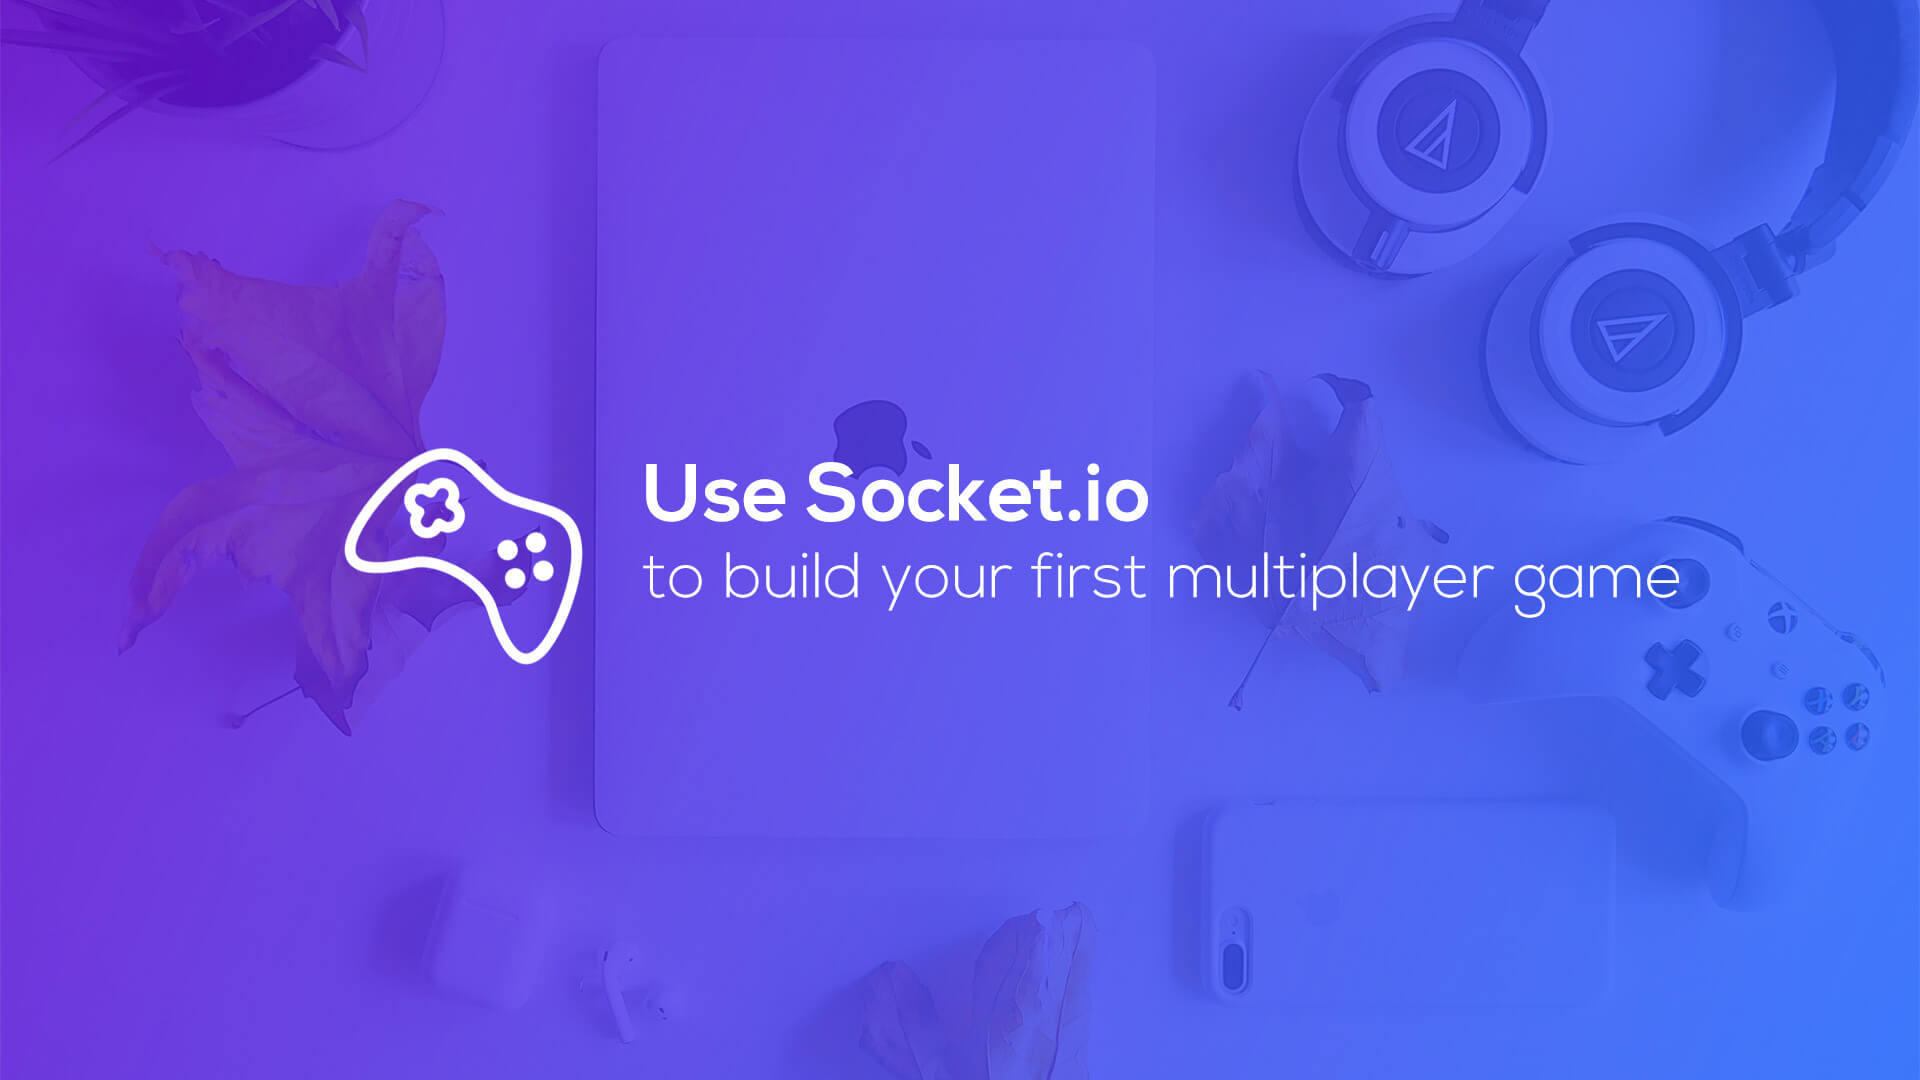 Use Socket.io to build your first multiplayer game!